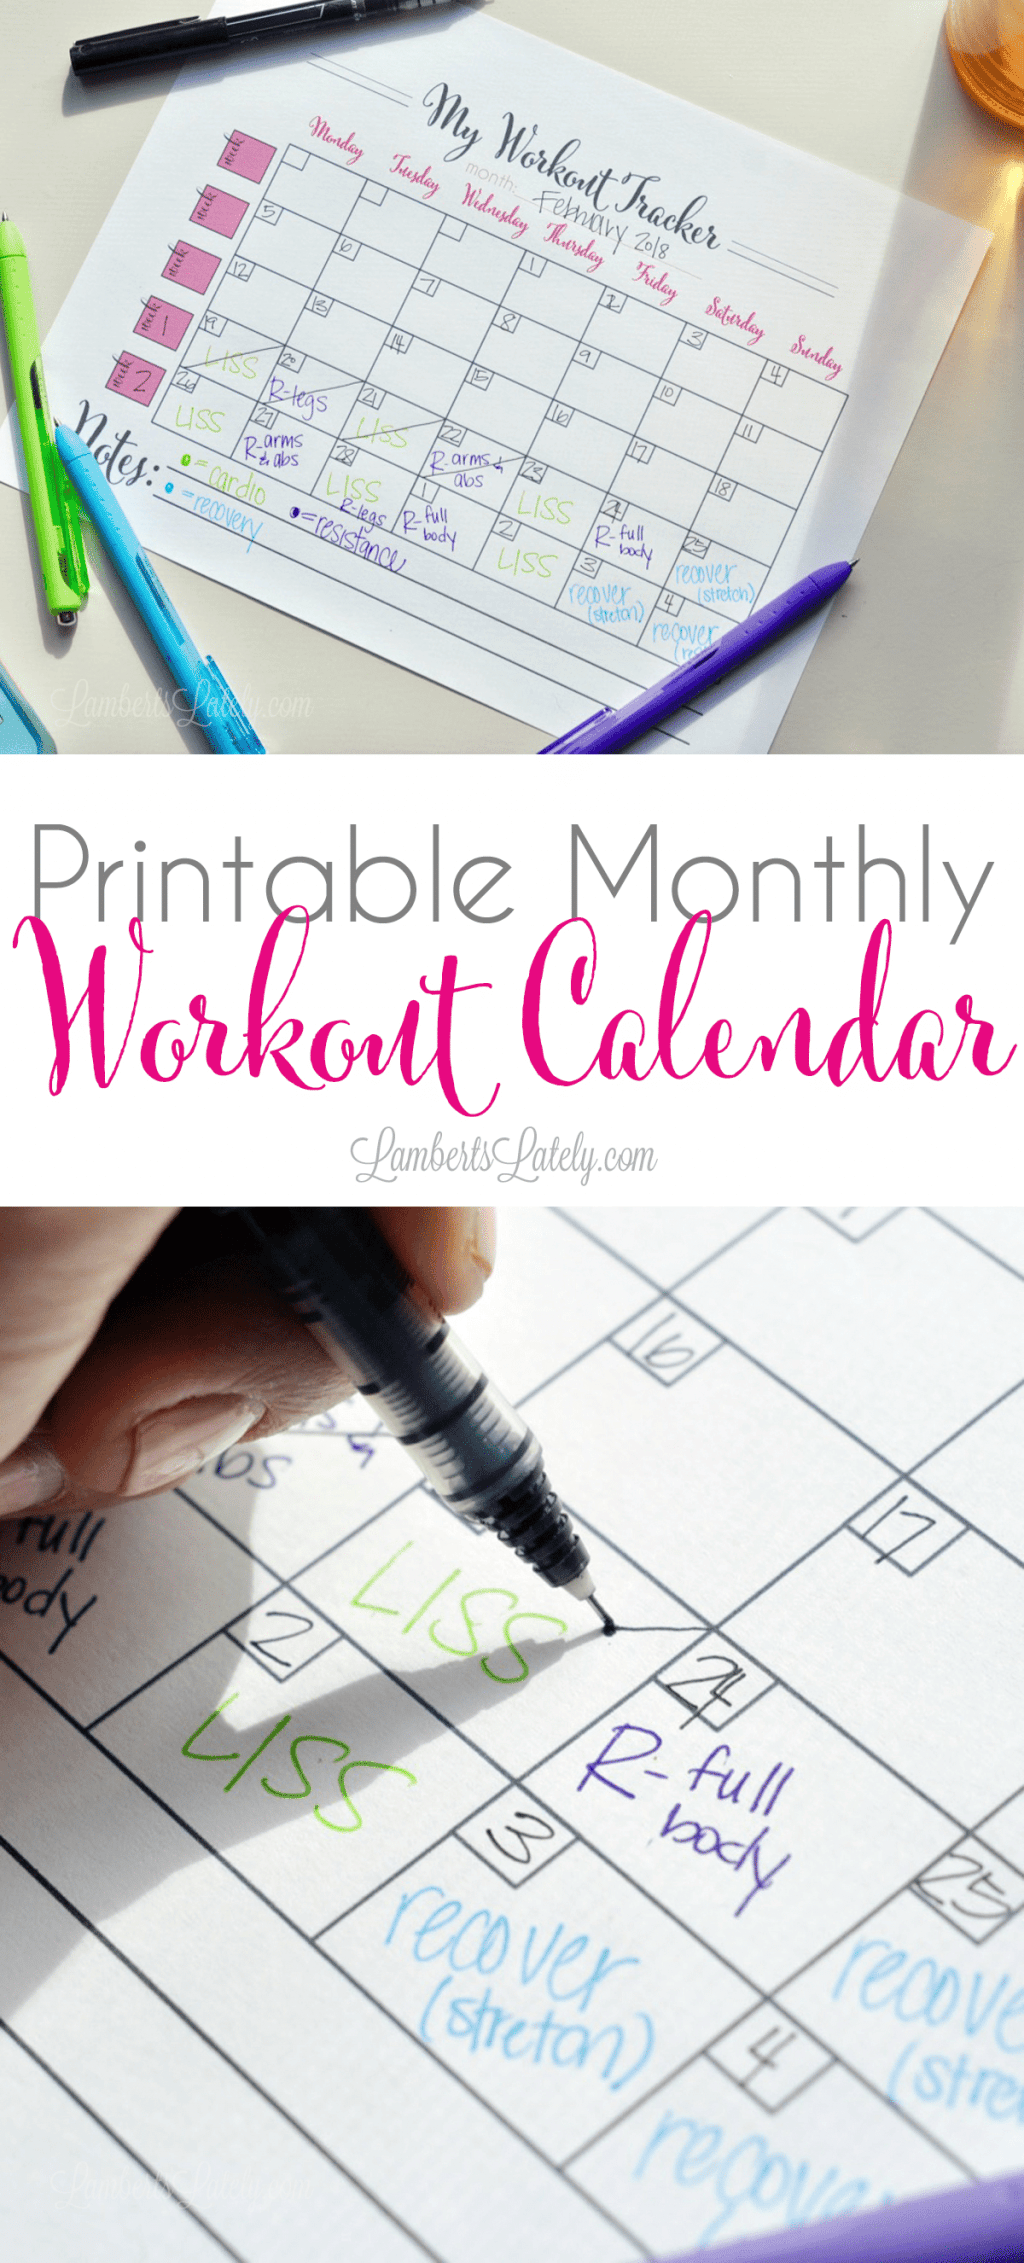 This printable monthly workout calendar is perfect for with getting a plan for your exercise routine. Use with Kayla Itsines' BBG program or another fitness/gym plan!